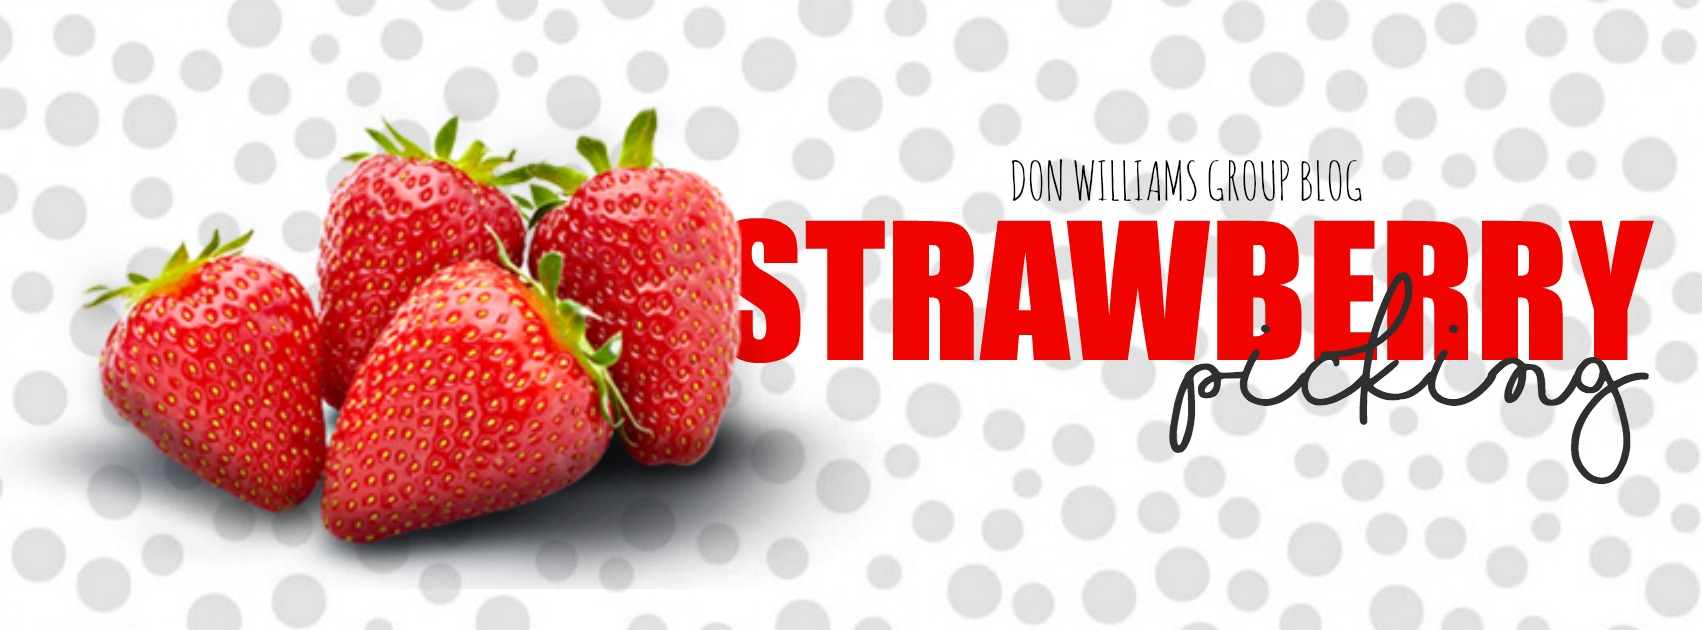 STRAWBERRY BLOG.jpg